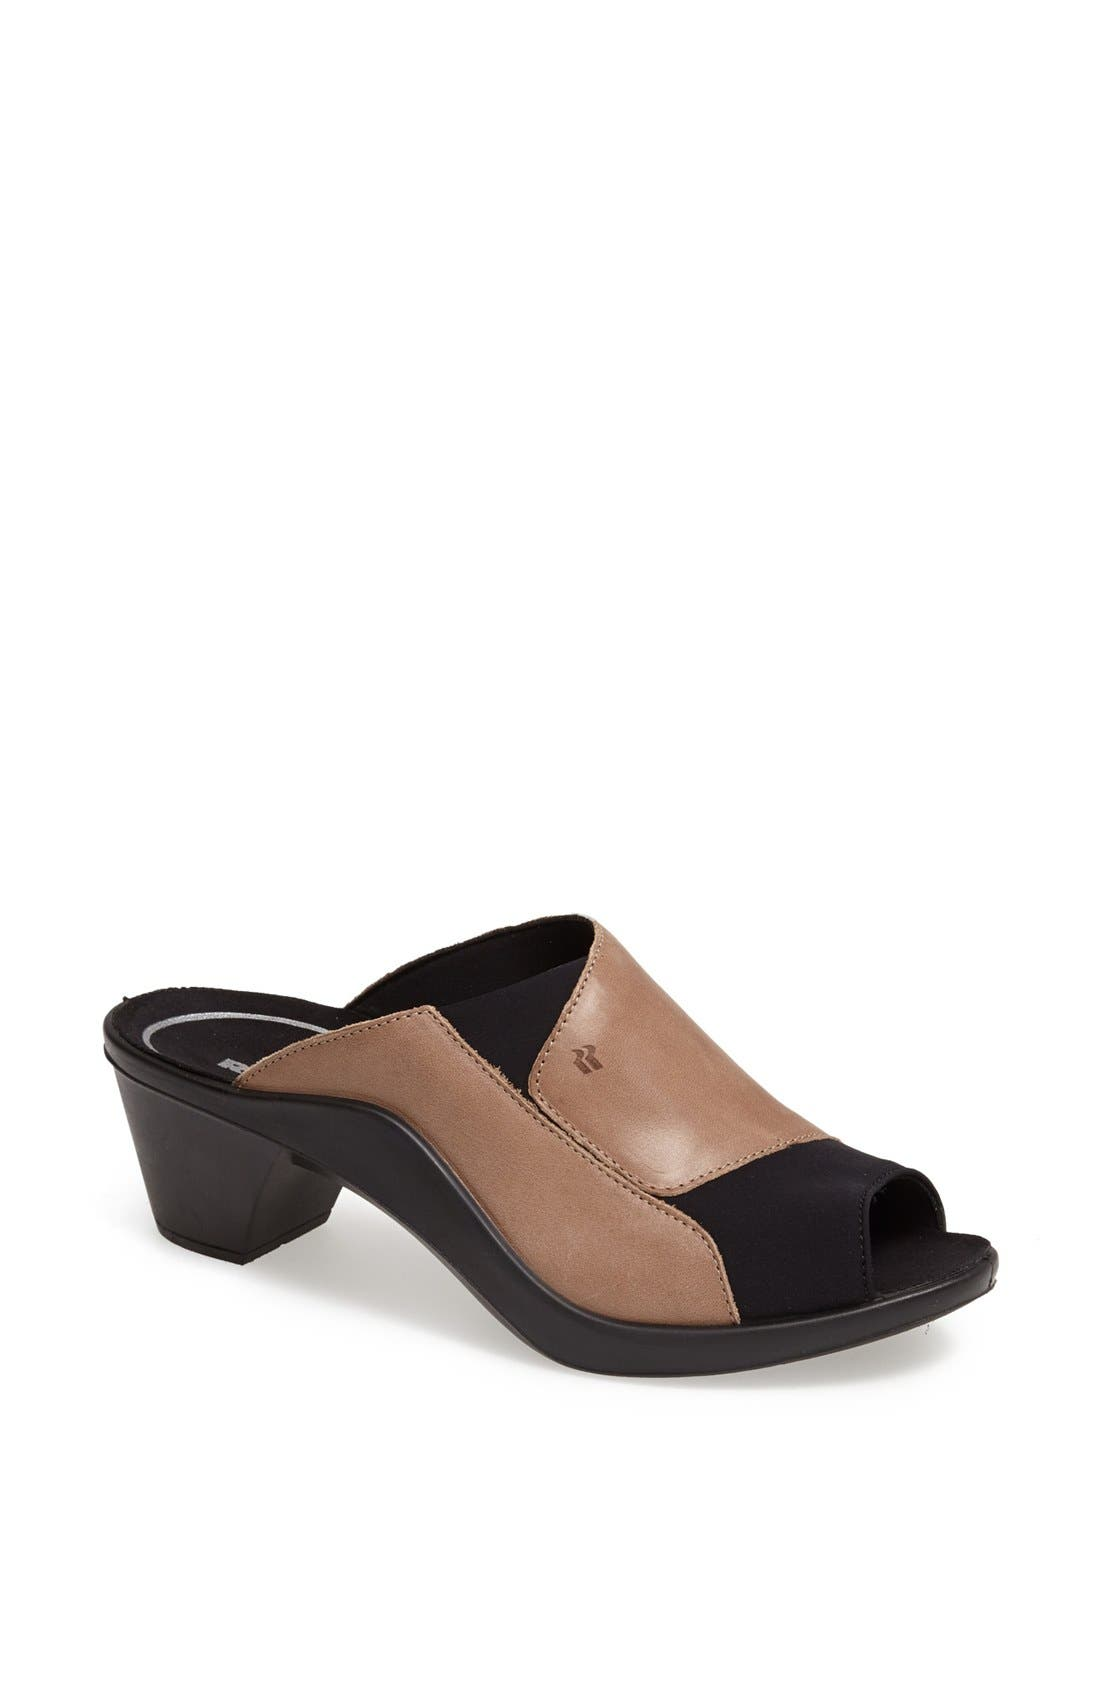 Alternate Image 1 Selected - Romika® 'Mokasetta' Mule (Women)